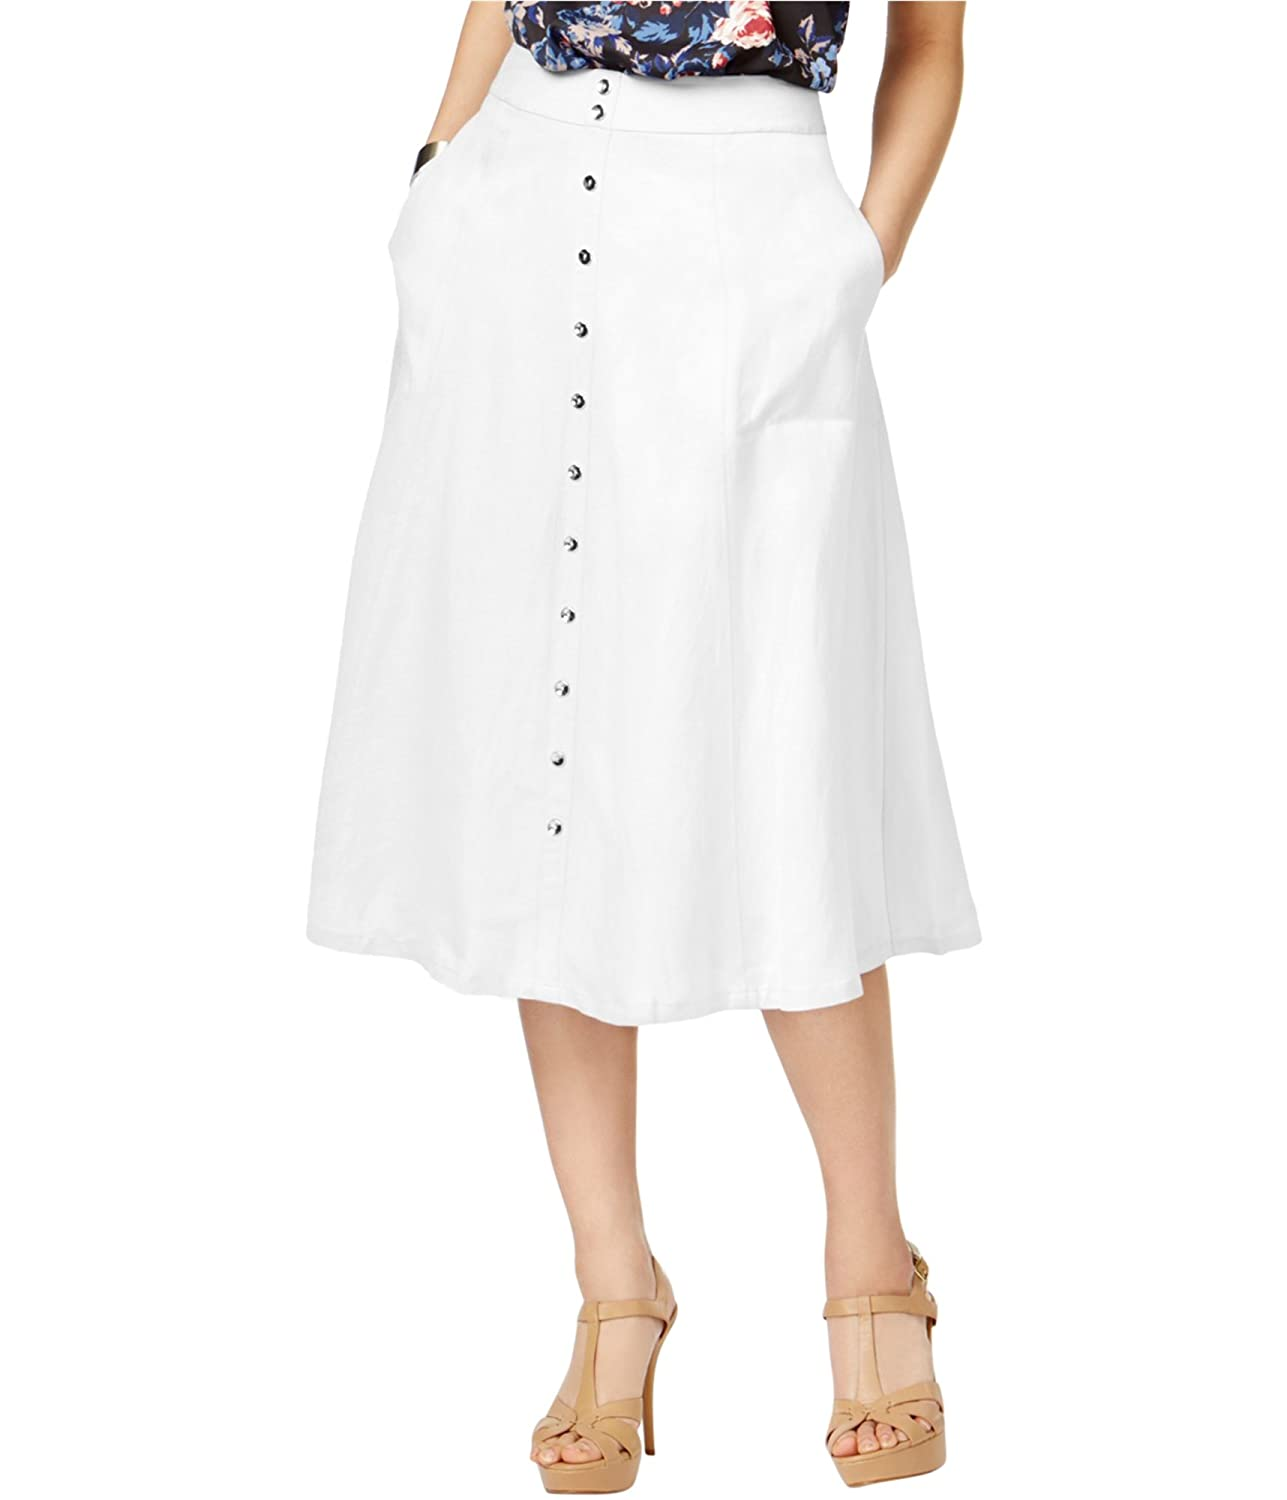 c05445dfe54 Linen rayon  lining  cotton. Olivia   Grace s sweeping A-line skirt is  finished with two on-seam pockets at the hips